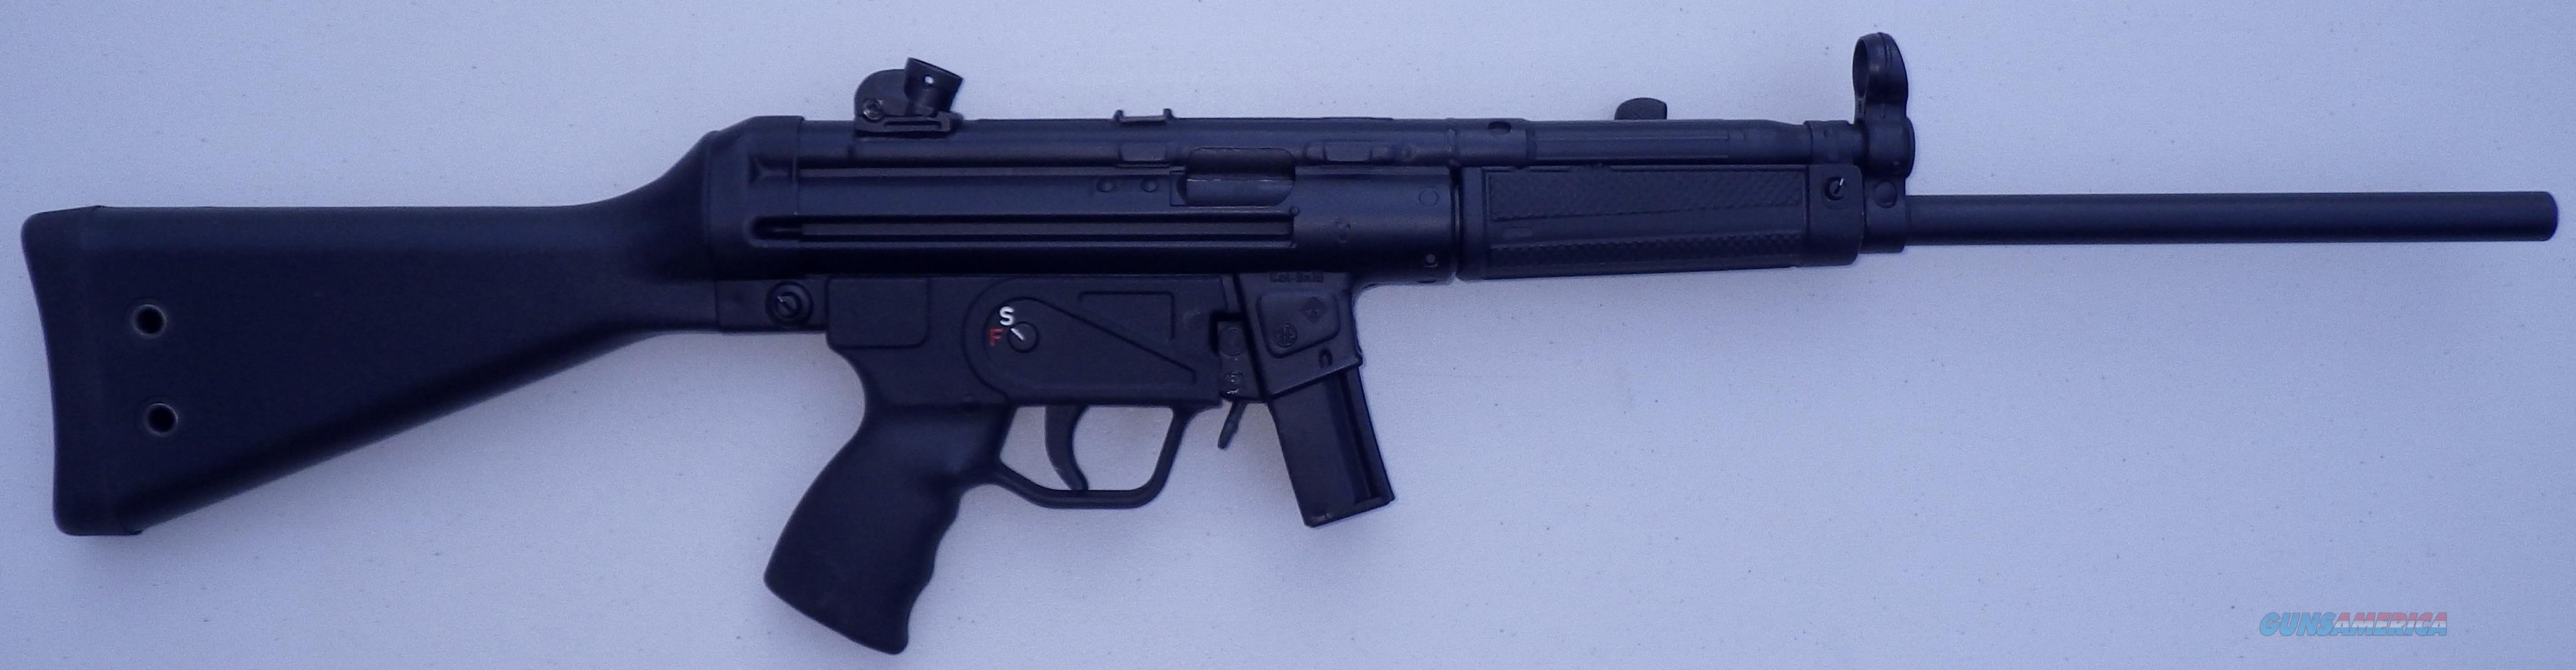 Image result for ATI MKE MP5 at94